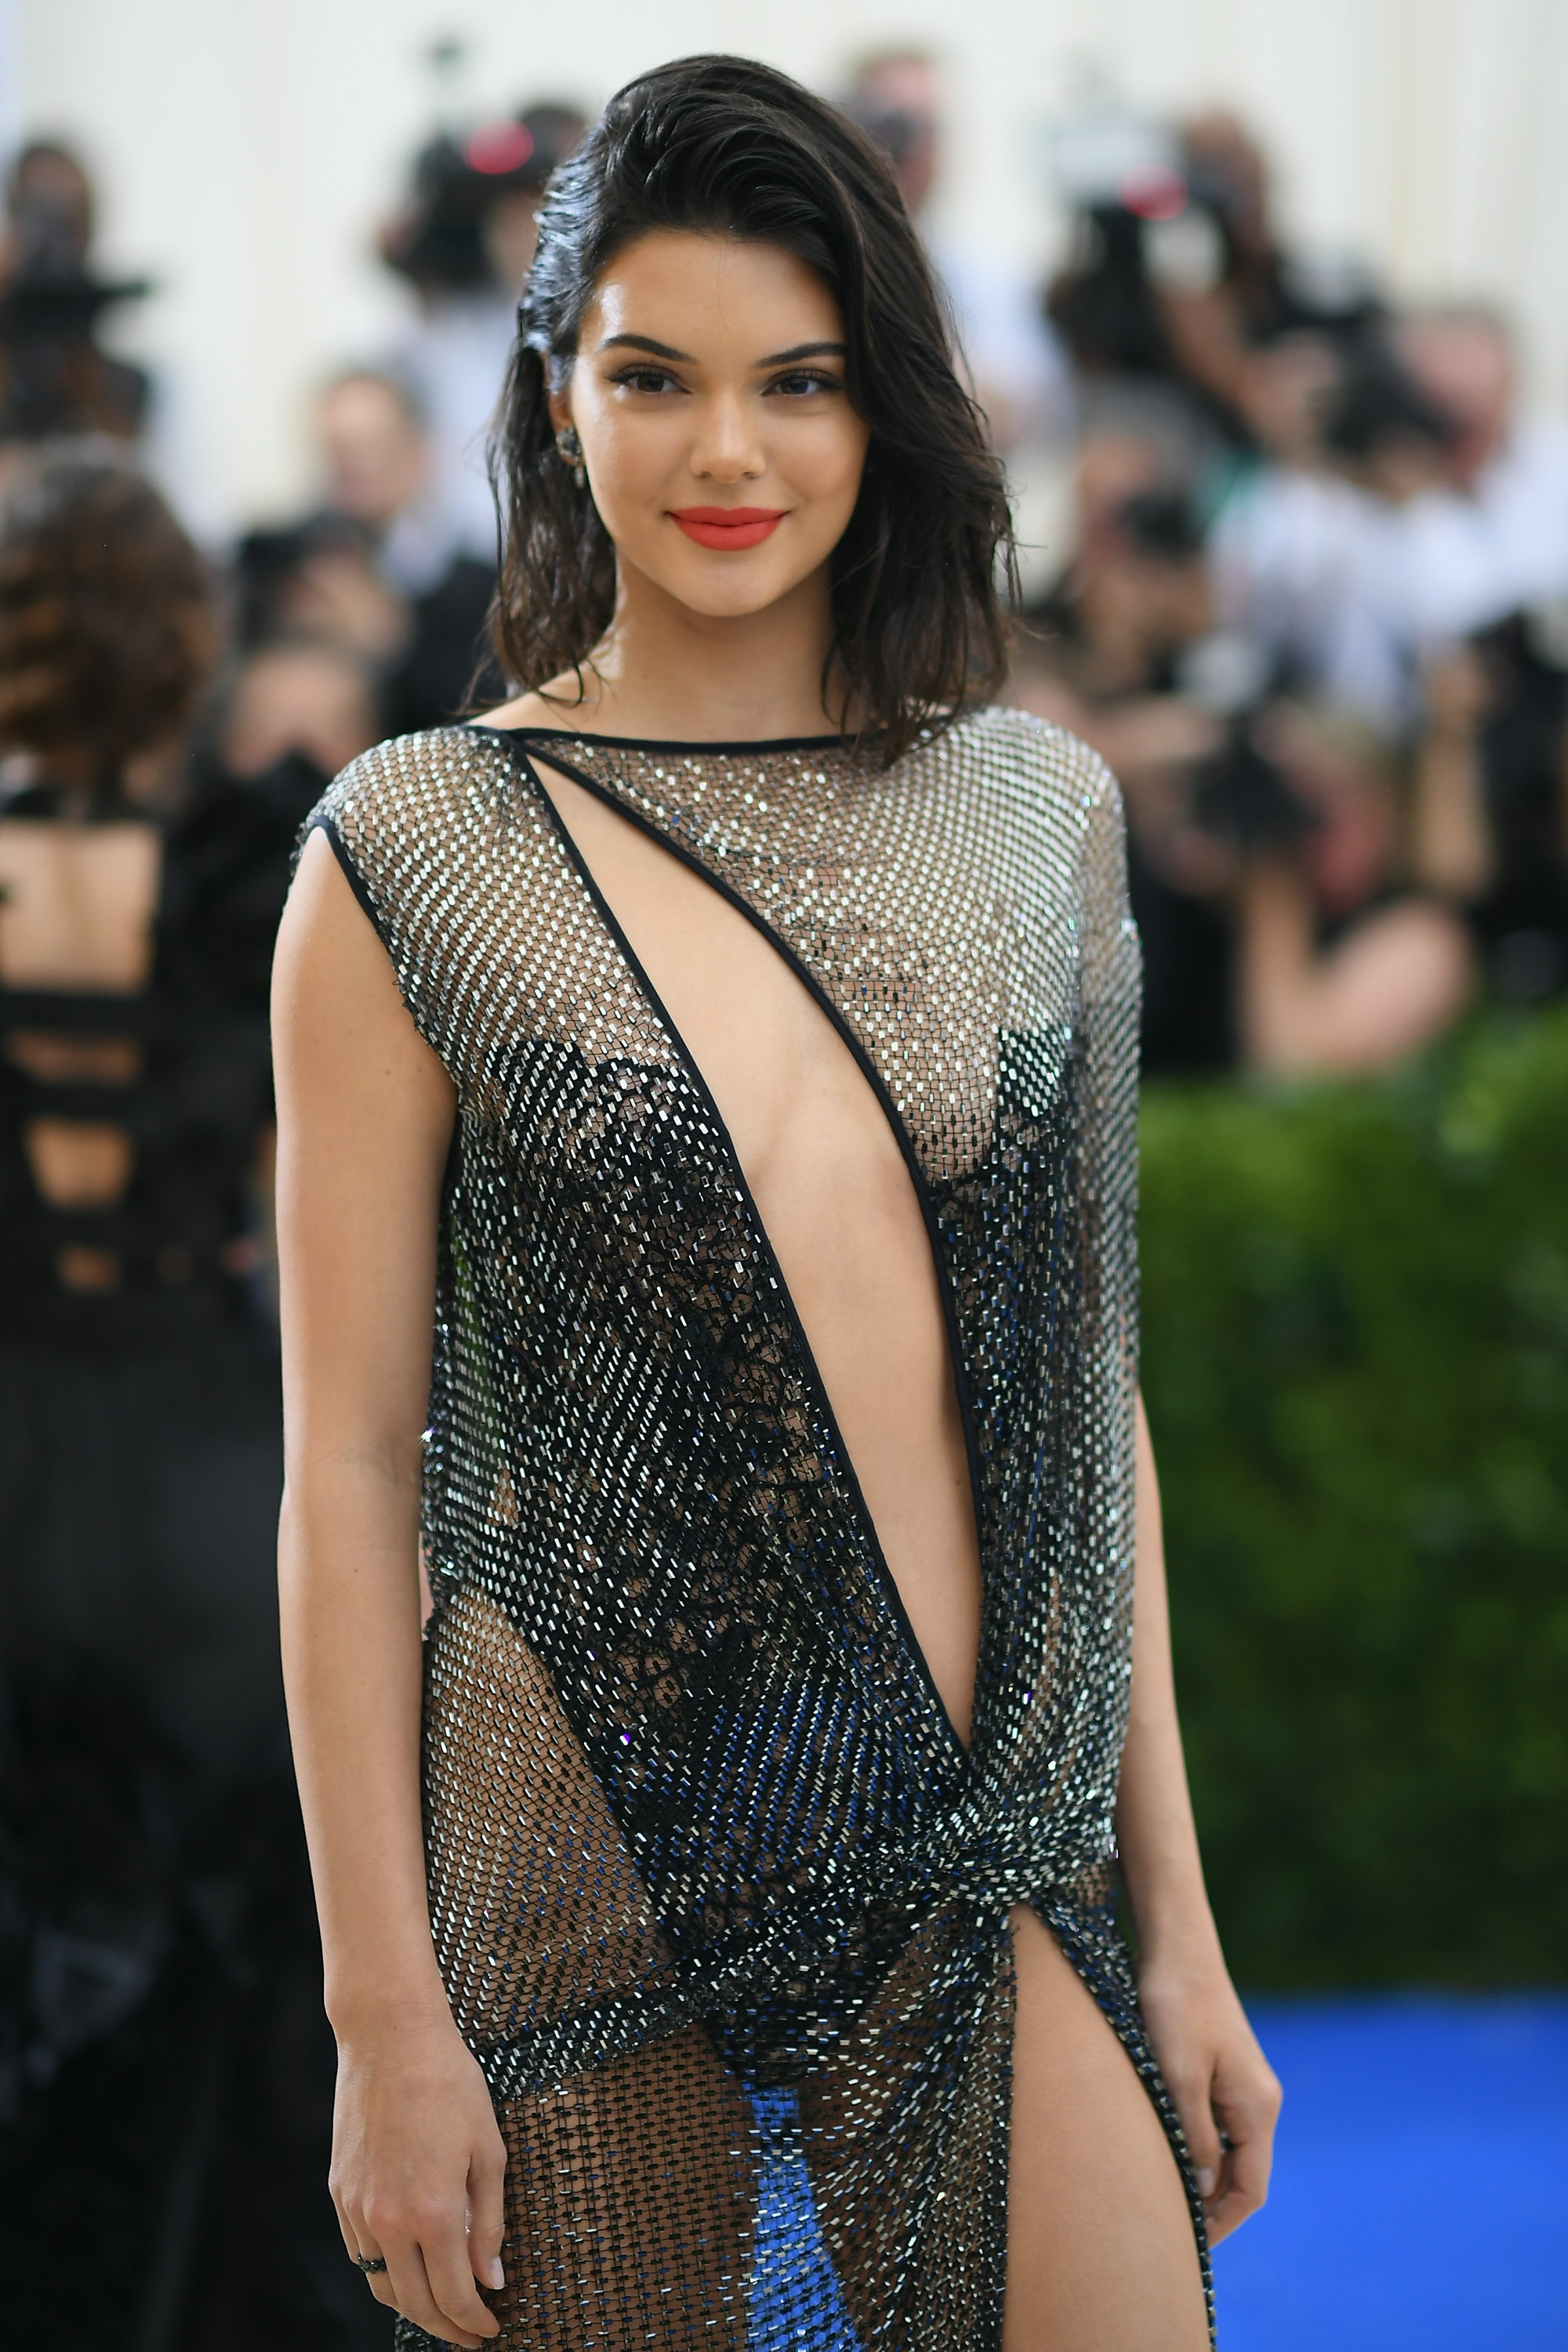 Kendall Jenner S 2017 Met Gala Dress Was Made With 85 000 Crystals